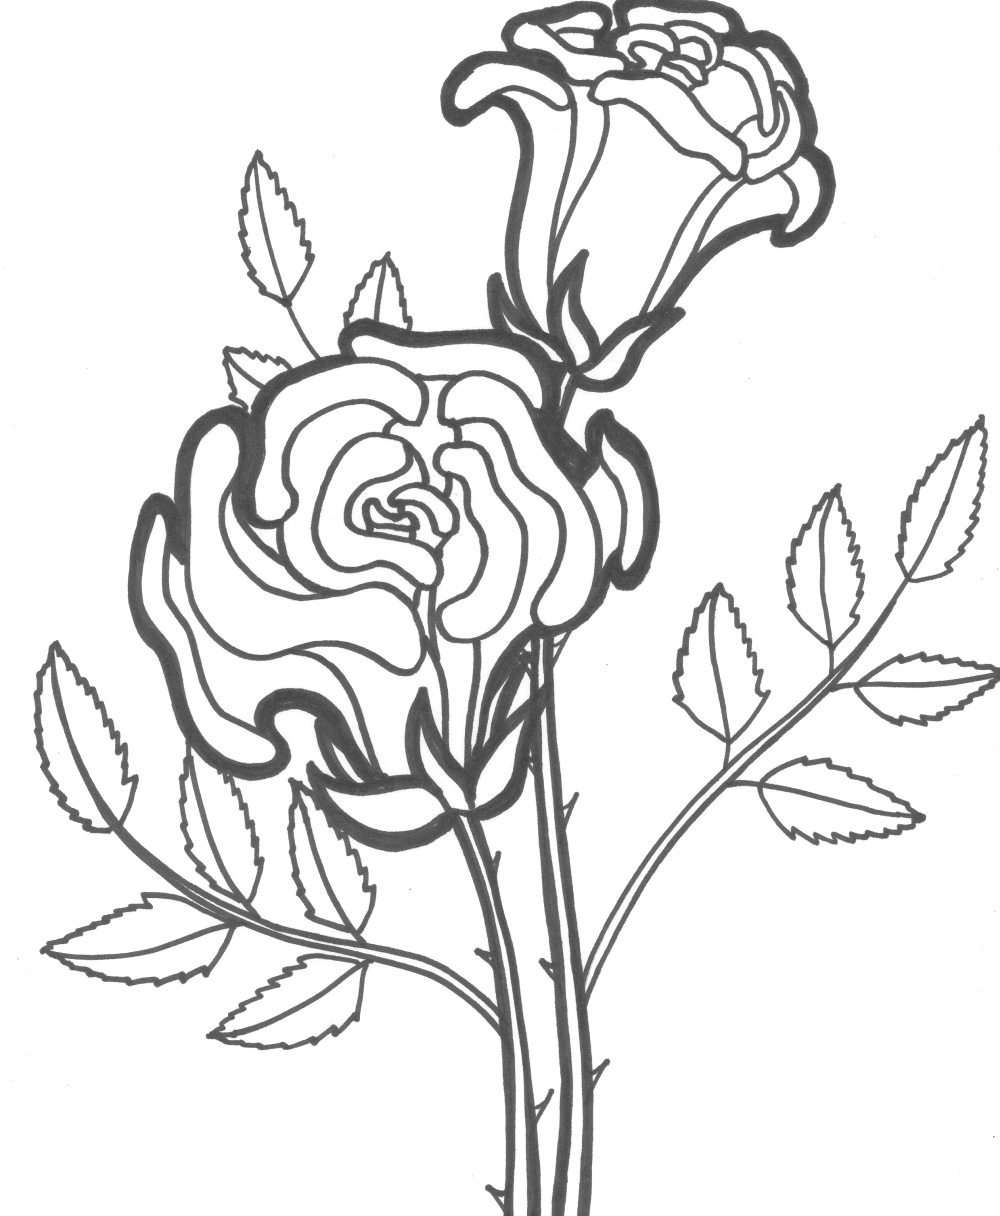 Dead Flower Drawing at GetDrawings.com | Free for personal ...